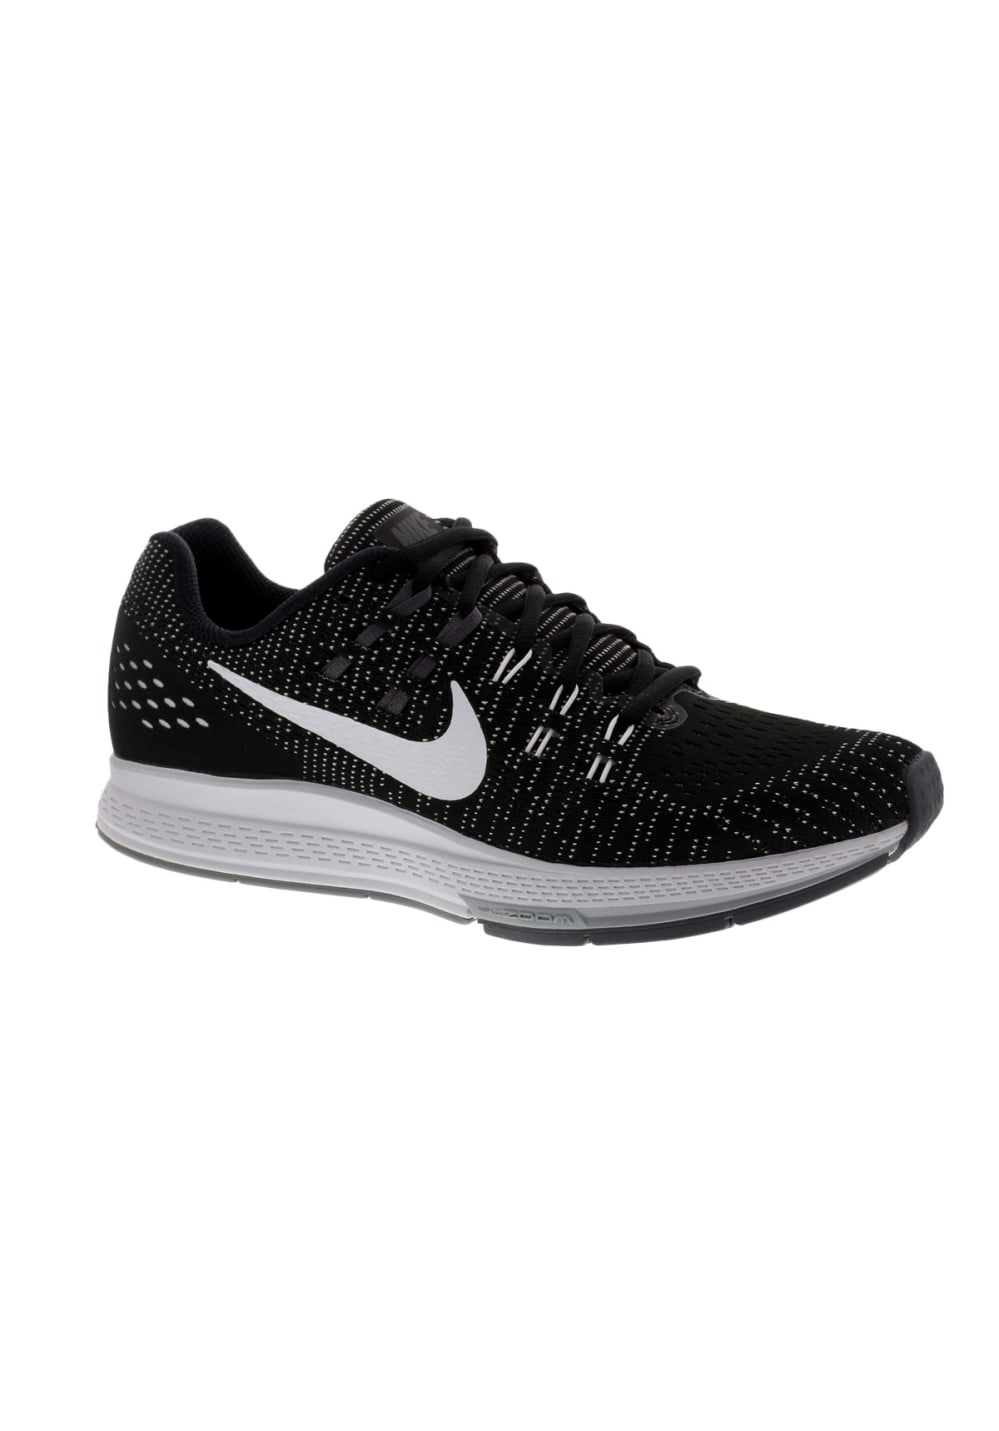 designer fashion b209b 10622 Nike Air Zoom Structure 19 - Running shoes for Women - Black